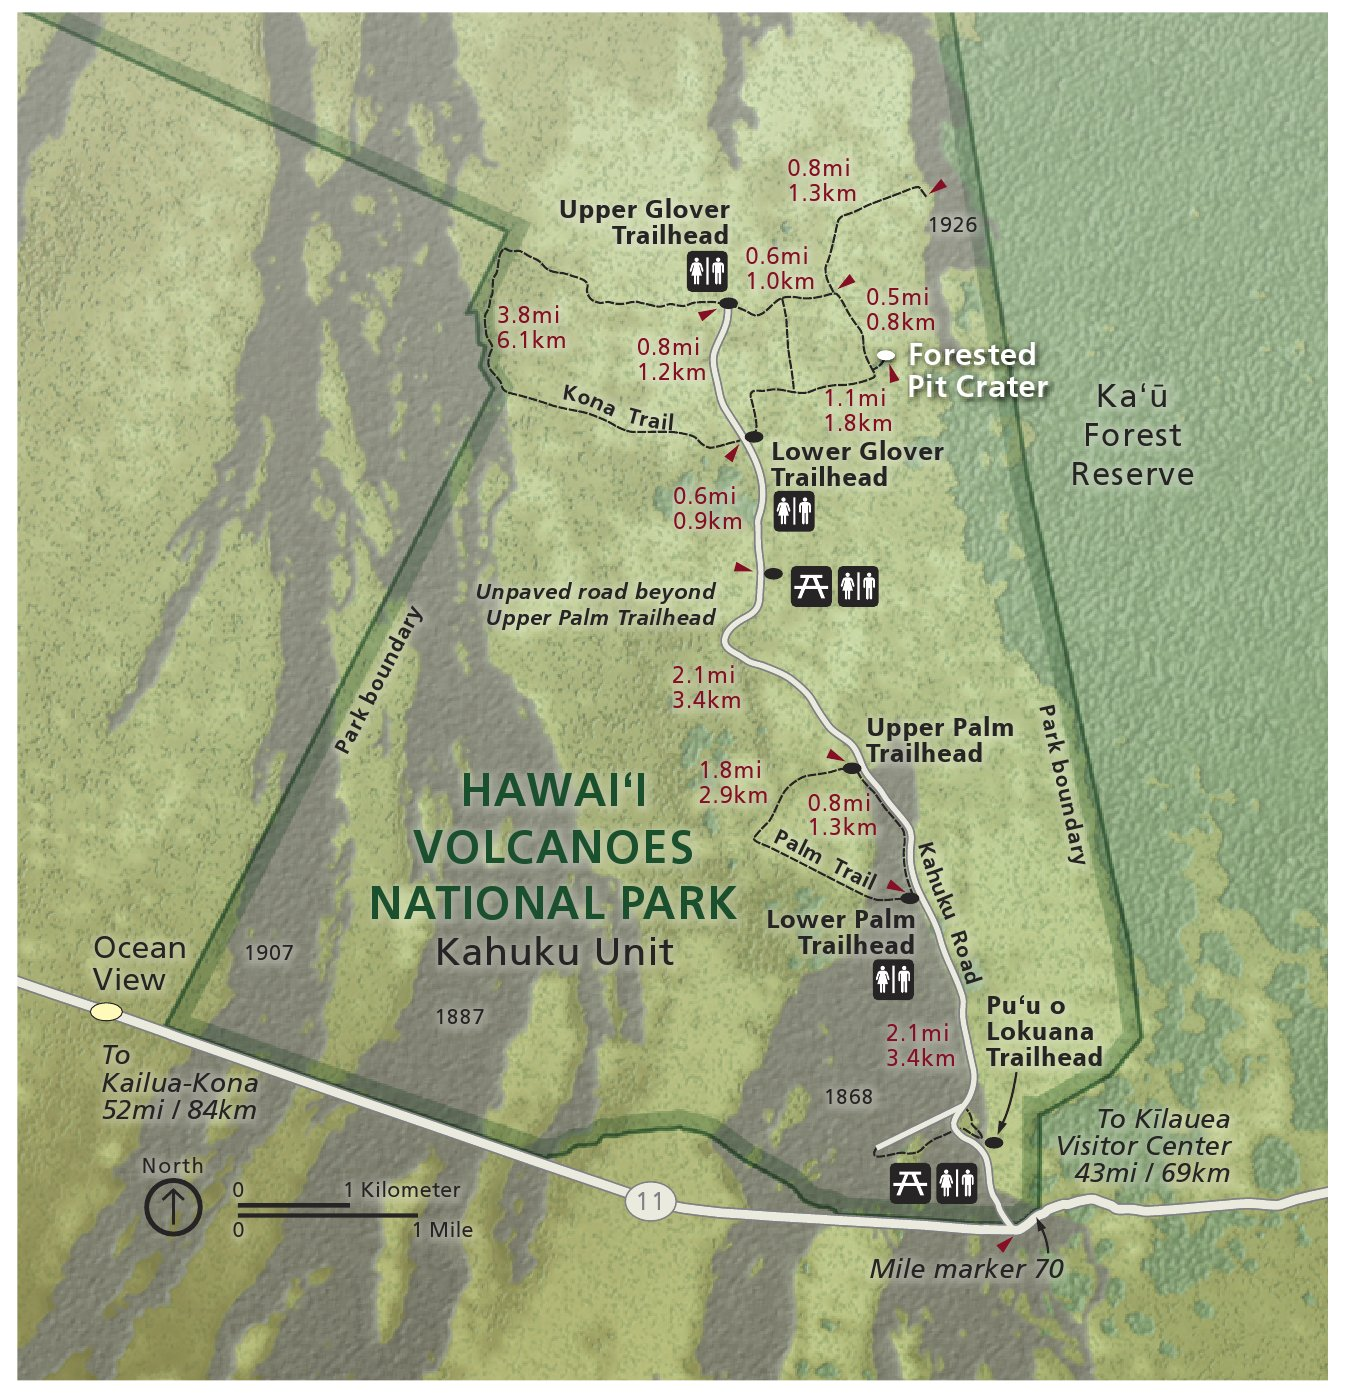 Hawaii Volcanoes Maps  NPMaps  Just Free Maps Period